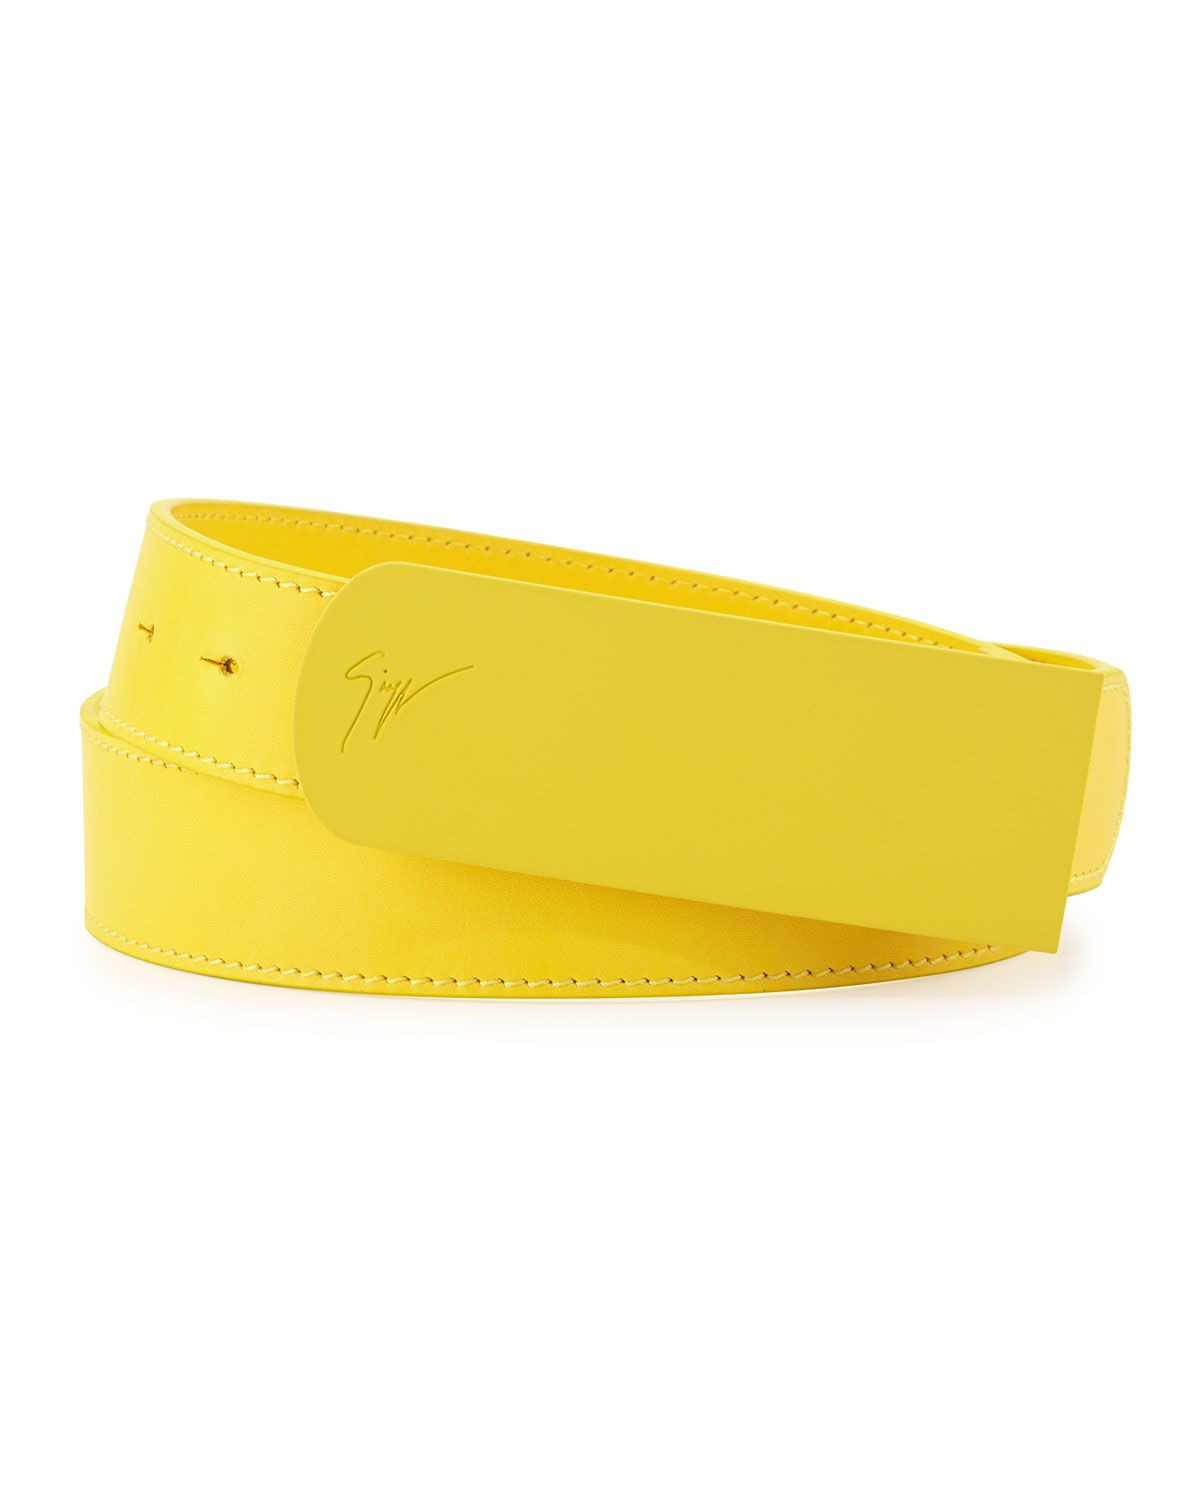 16af53cb048 Men's Leather Matte-Buckle Belt, Yellow, Size: 36IN/90CM - Giuseppe ...